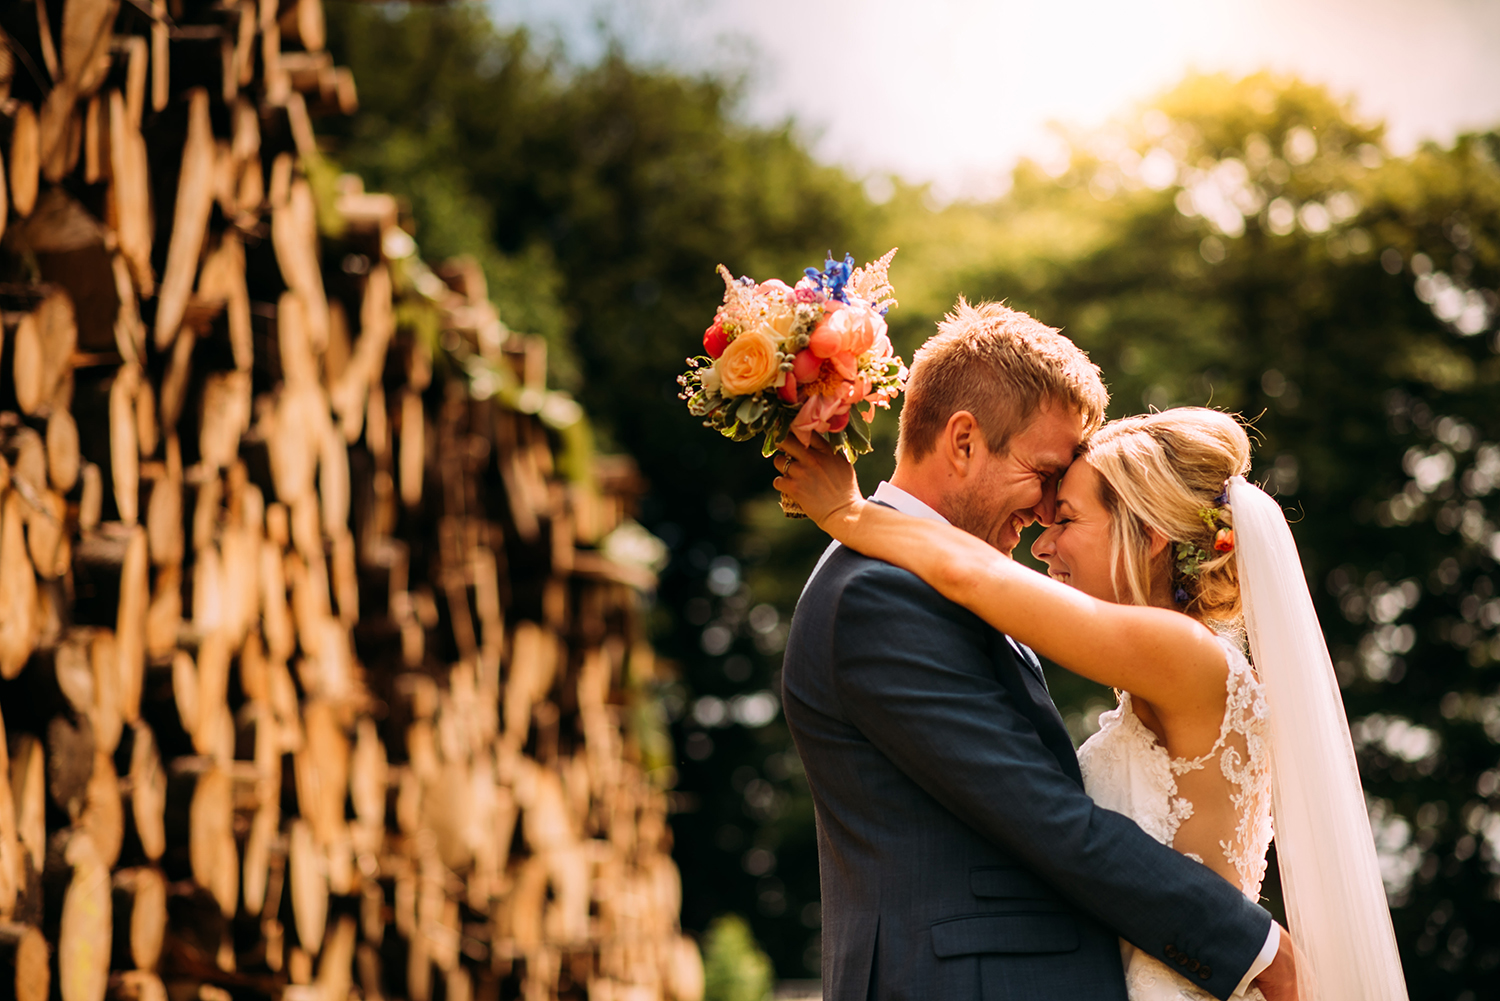 the couple embrace in sun light by a pile of logs